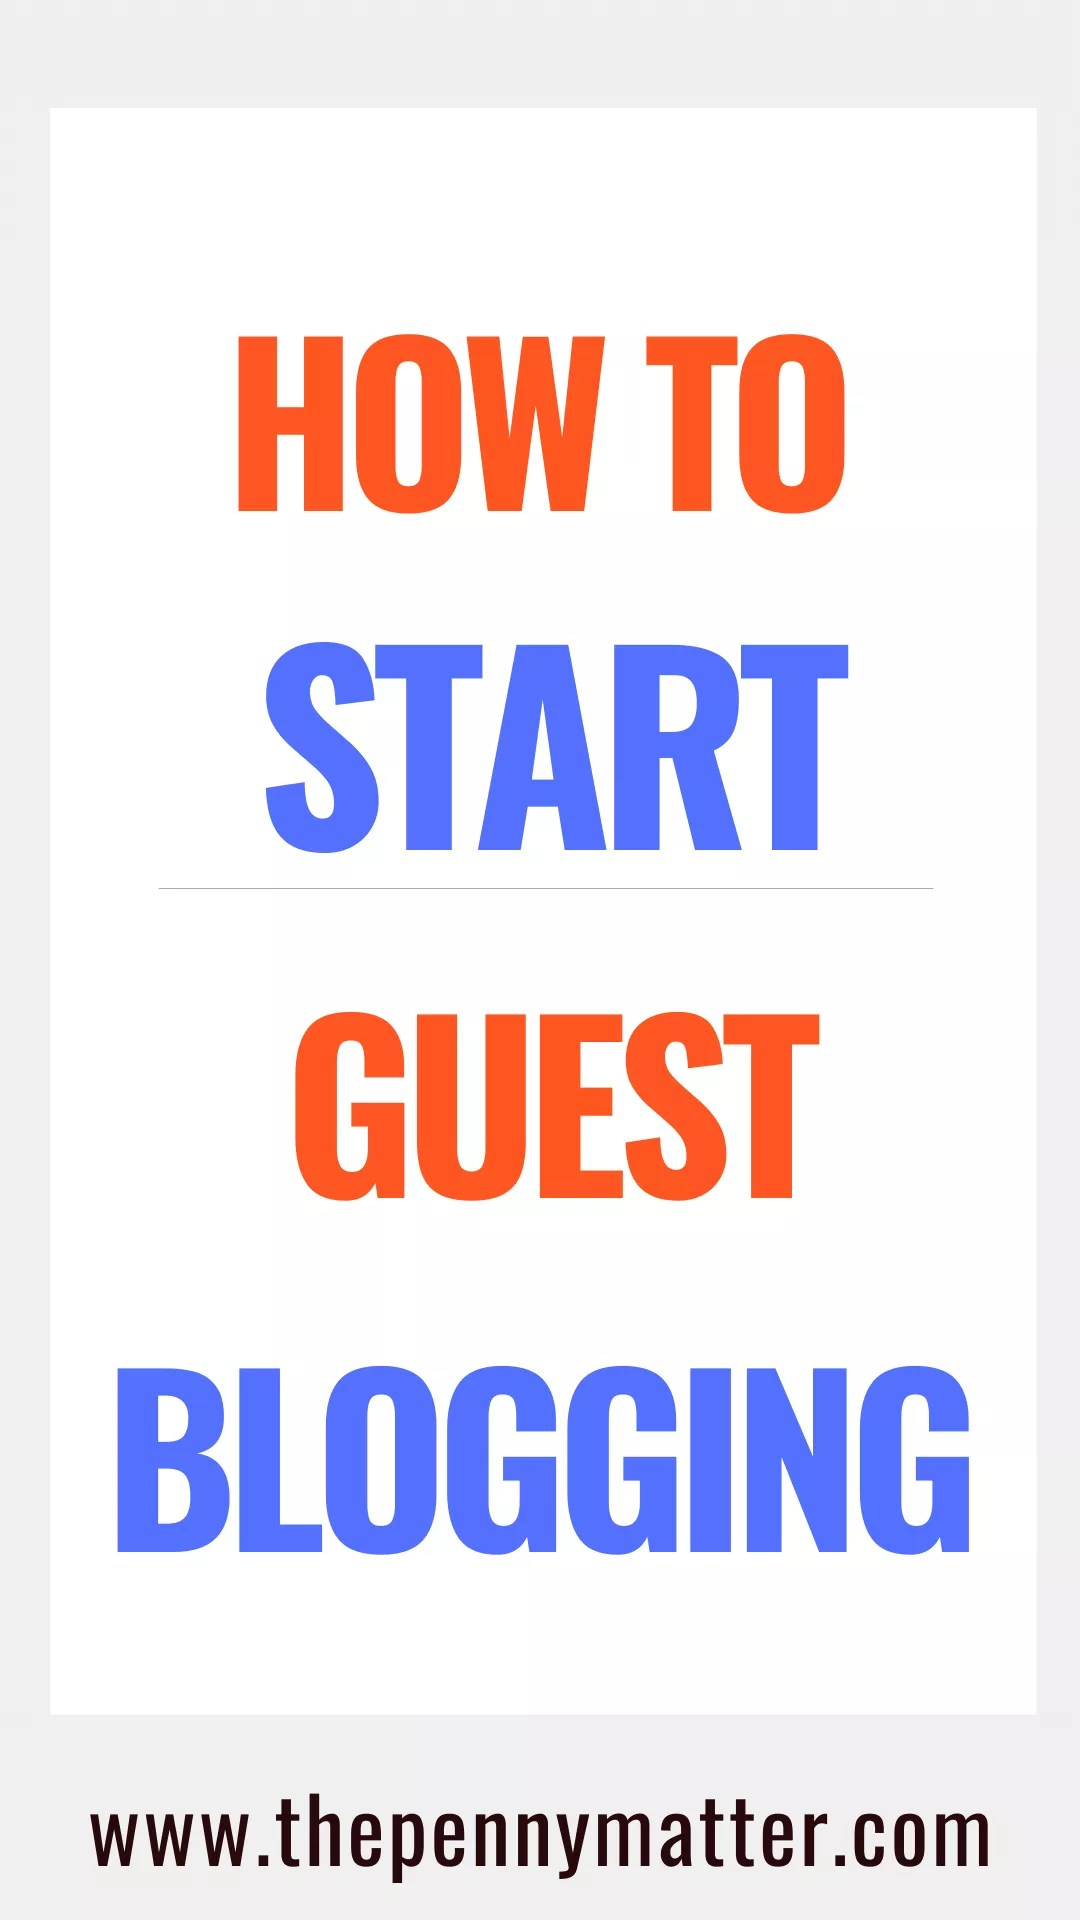 Want to start Guest Blogging? Here\'s a step by step guide on How to start Guest Blogging, how to find guest posting opportunities, how to write a guest post pitch like an expert, guest post submission guidelines etc. #guestposting #blog #bloggingtips #blogger #guestblogging